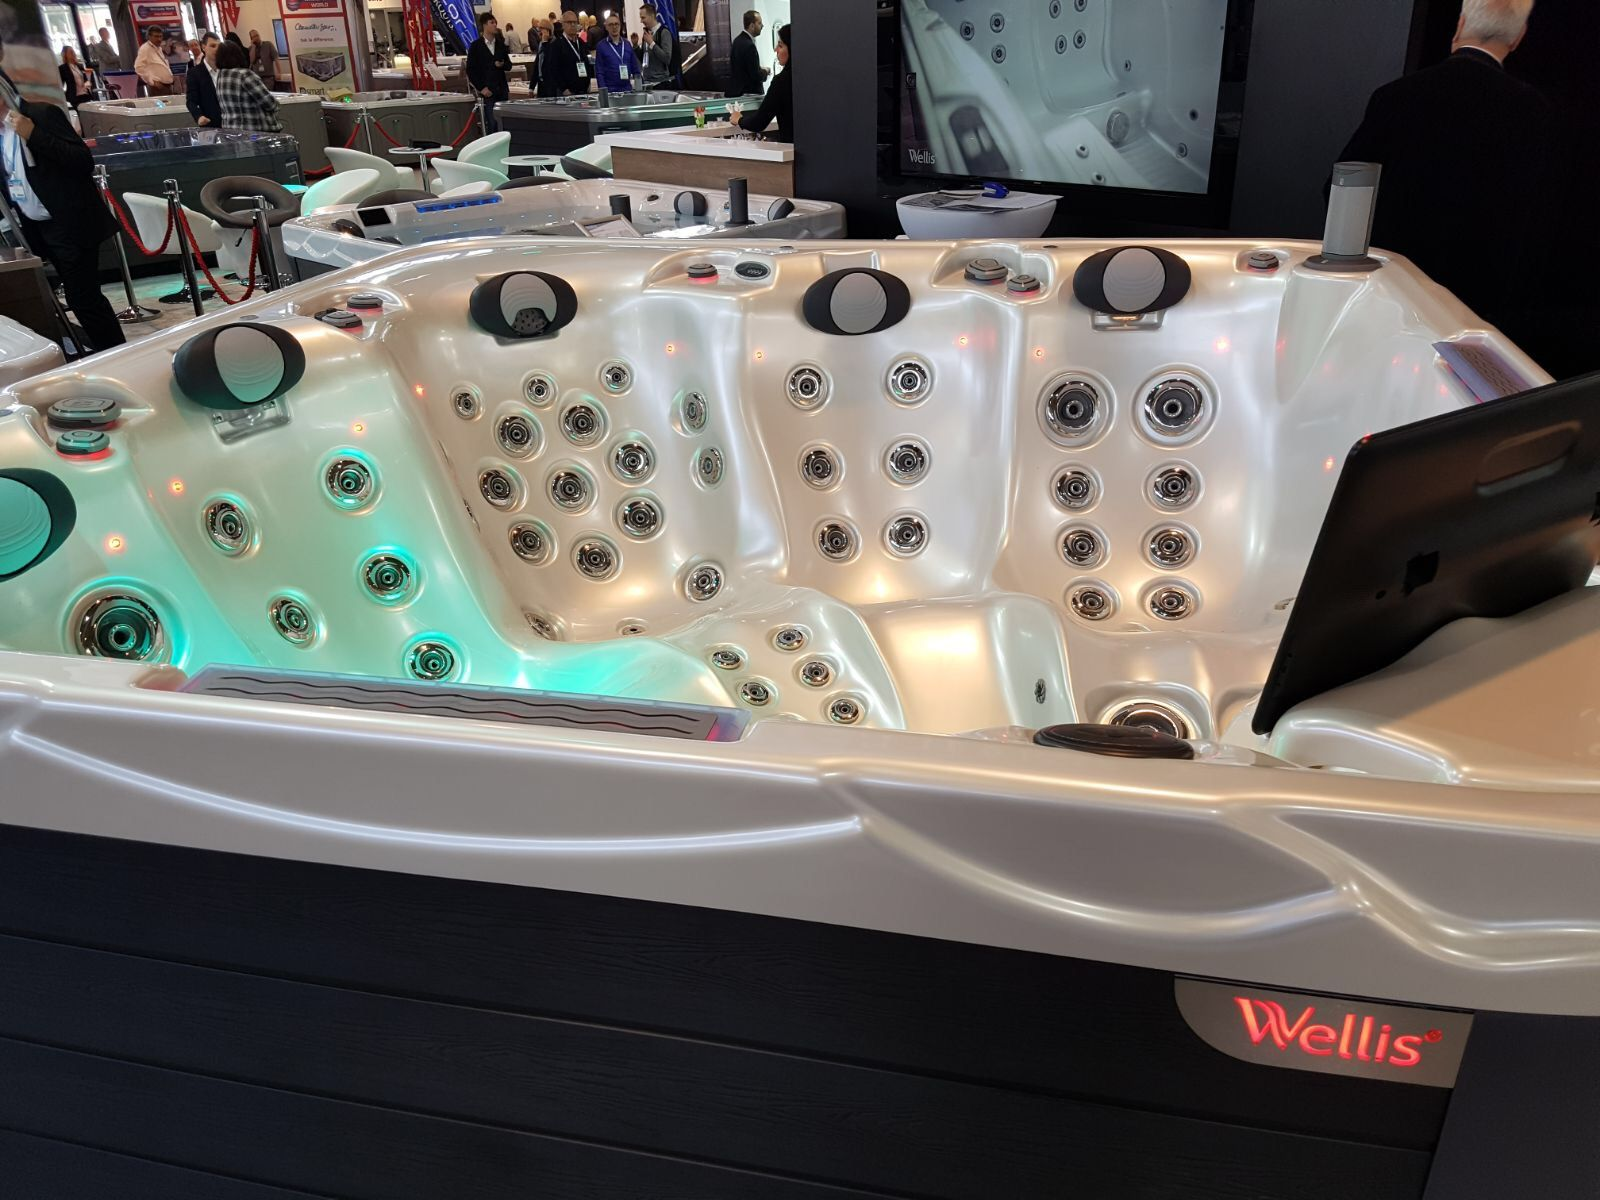 Wellis Voyager Hot Tub SpaWars 5 Lounger With 2 round pop-up ...